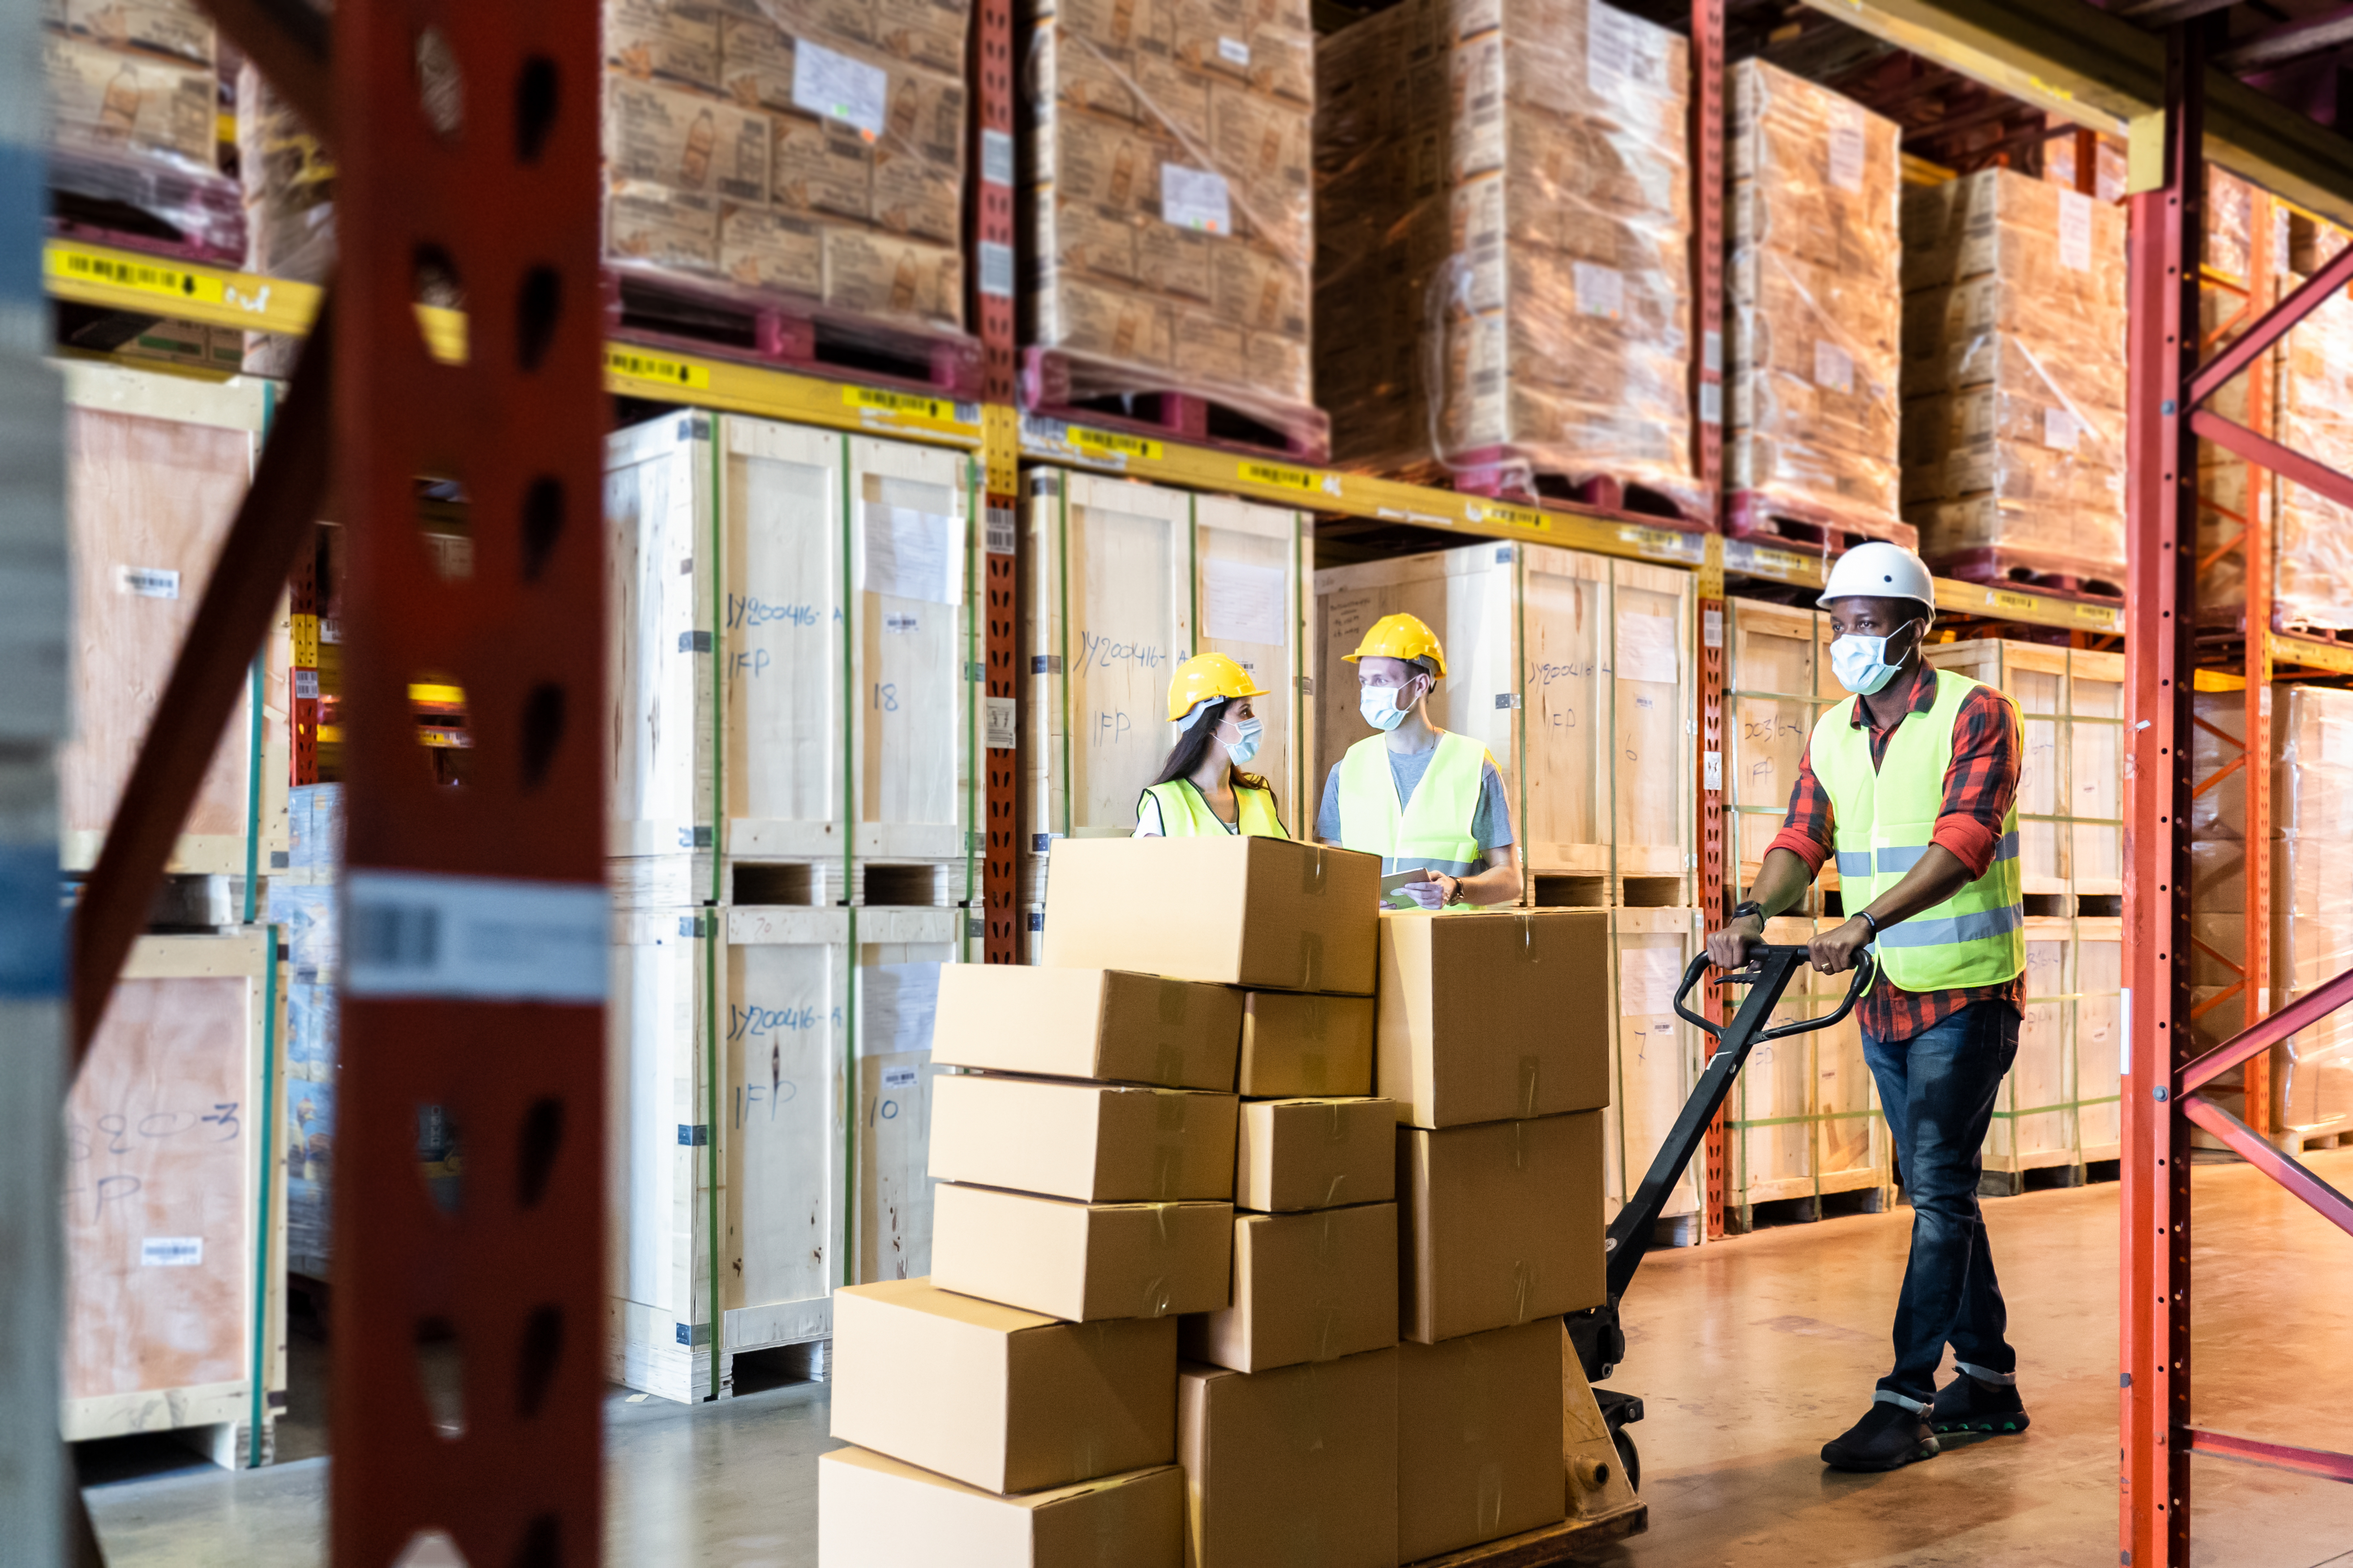 3 Questions: Frank Levy and Arshia Mehta on warehousing and trucking in response to Covid-19